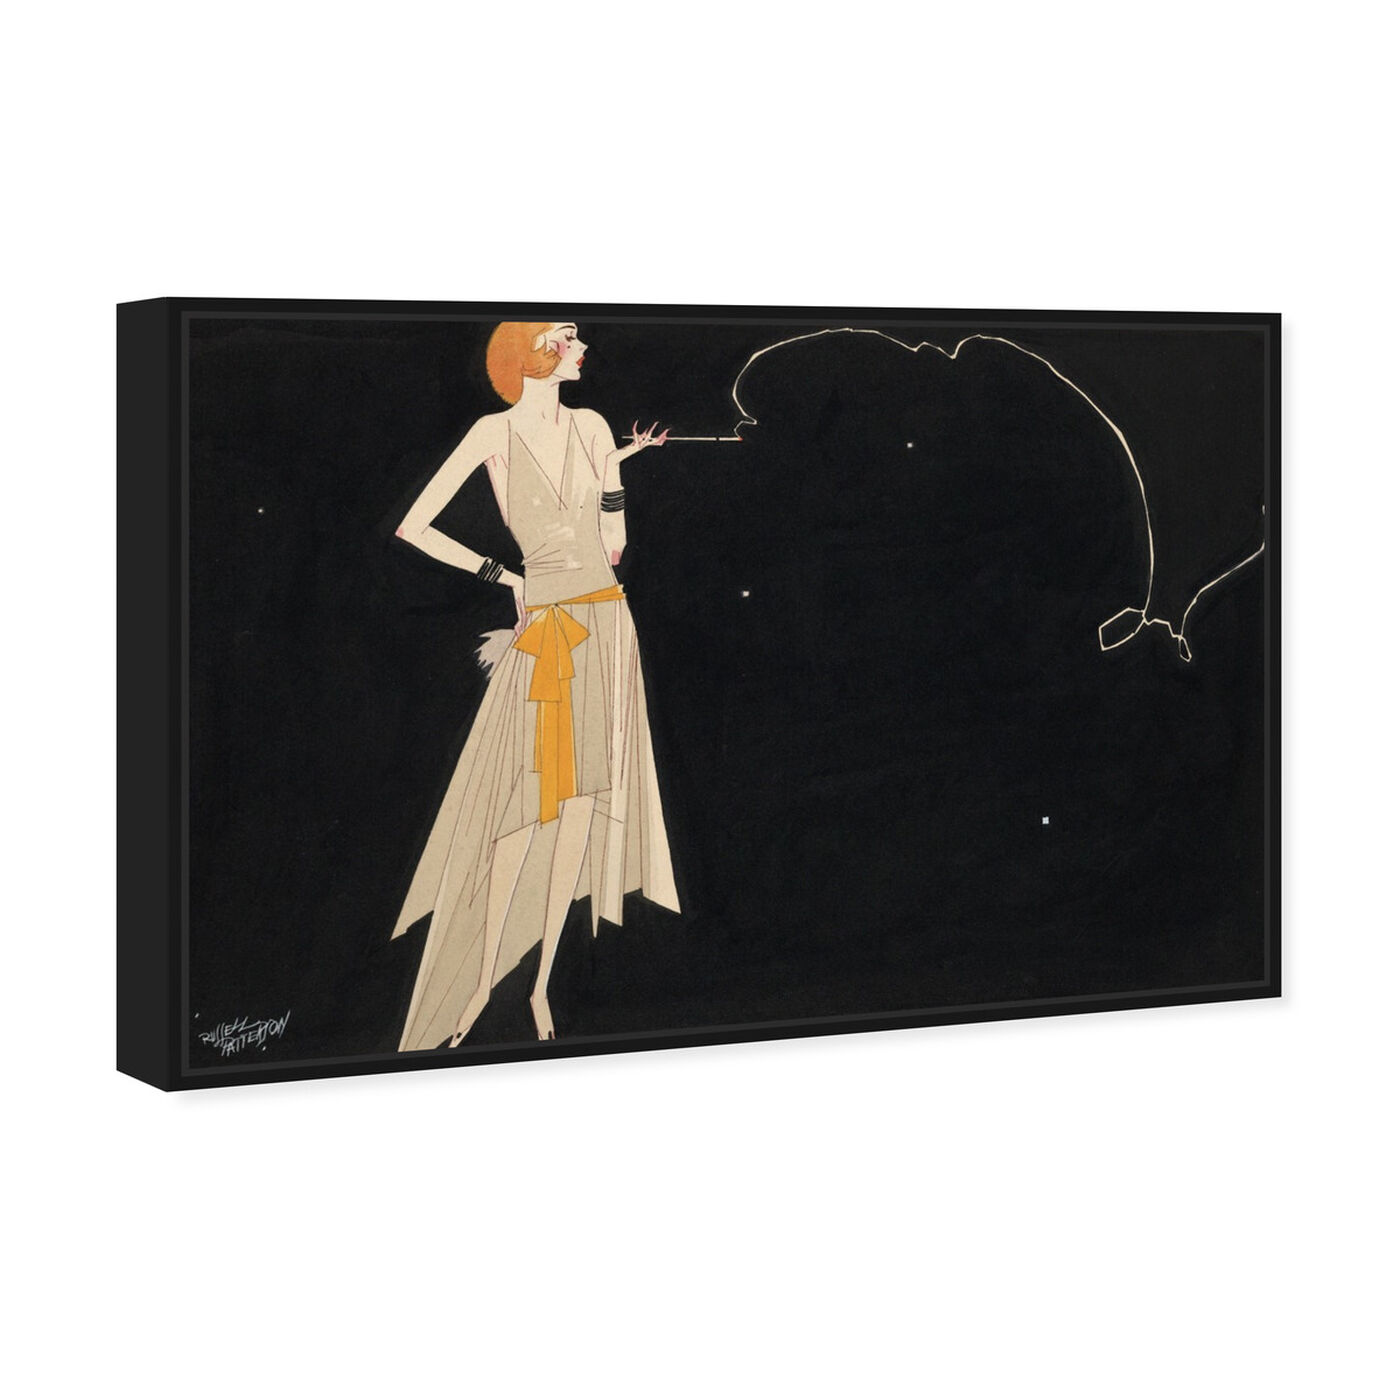 Angled view of Where There's Smoke There's Fire - The Art Cabinet featuring fashion and glam and dress art.